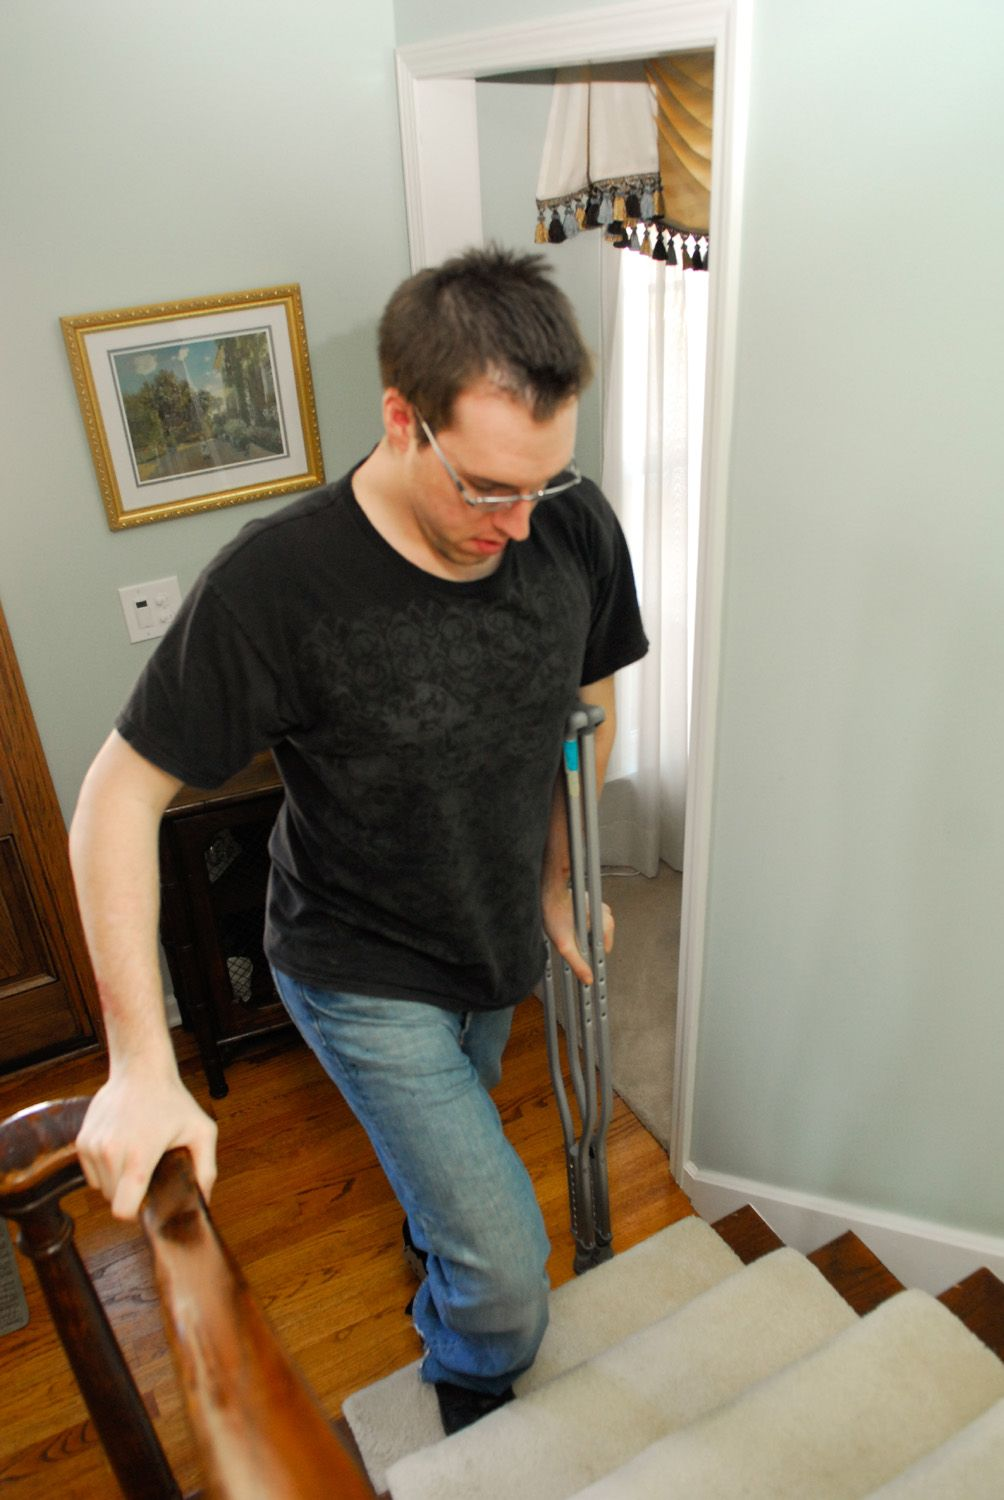 Walk On Crutches Crutches Pinterest Crutch And Physical Therapy